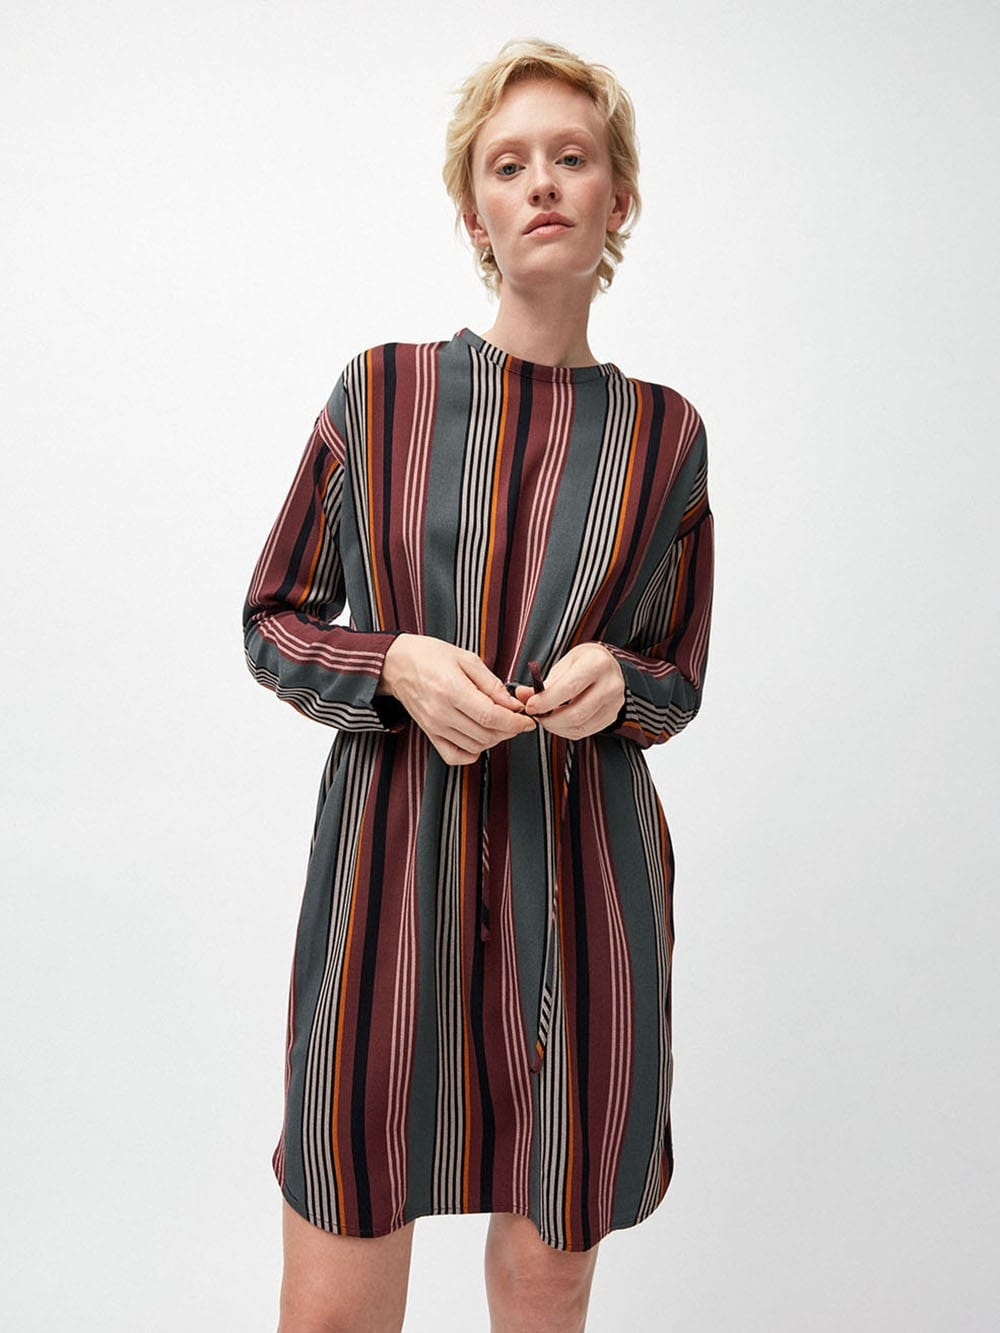 Printed viscose dress ECOVERO-Edurnaa Clustered Stripes